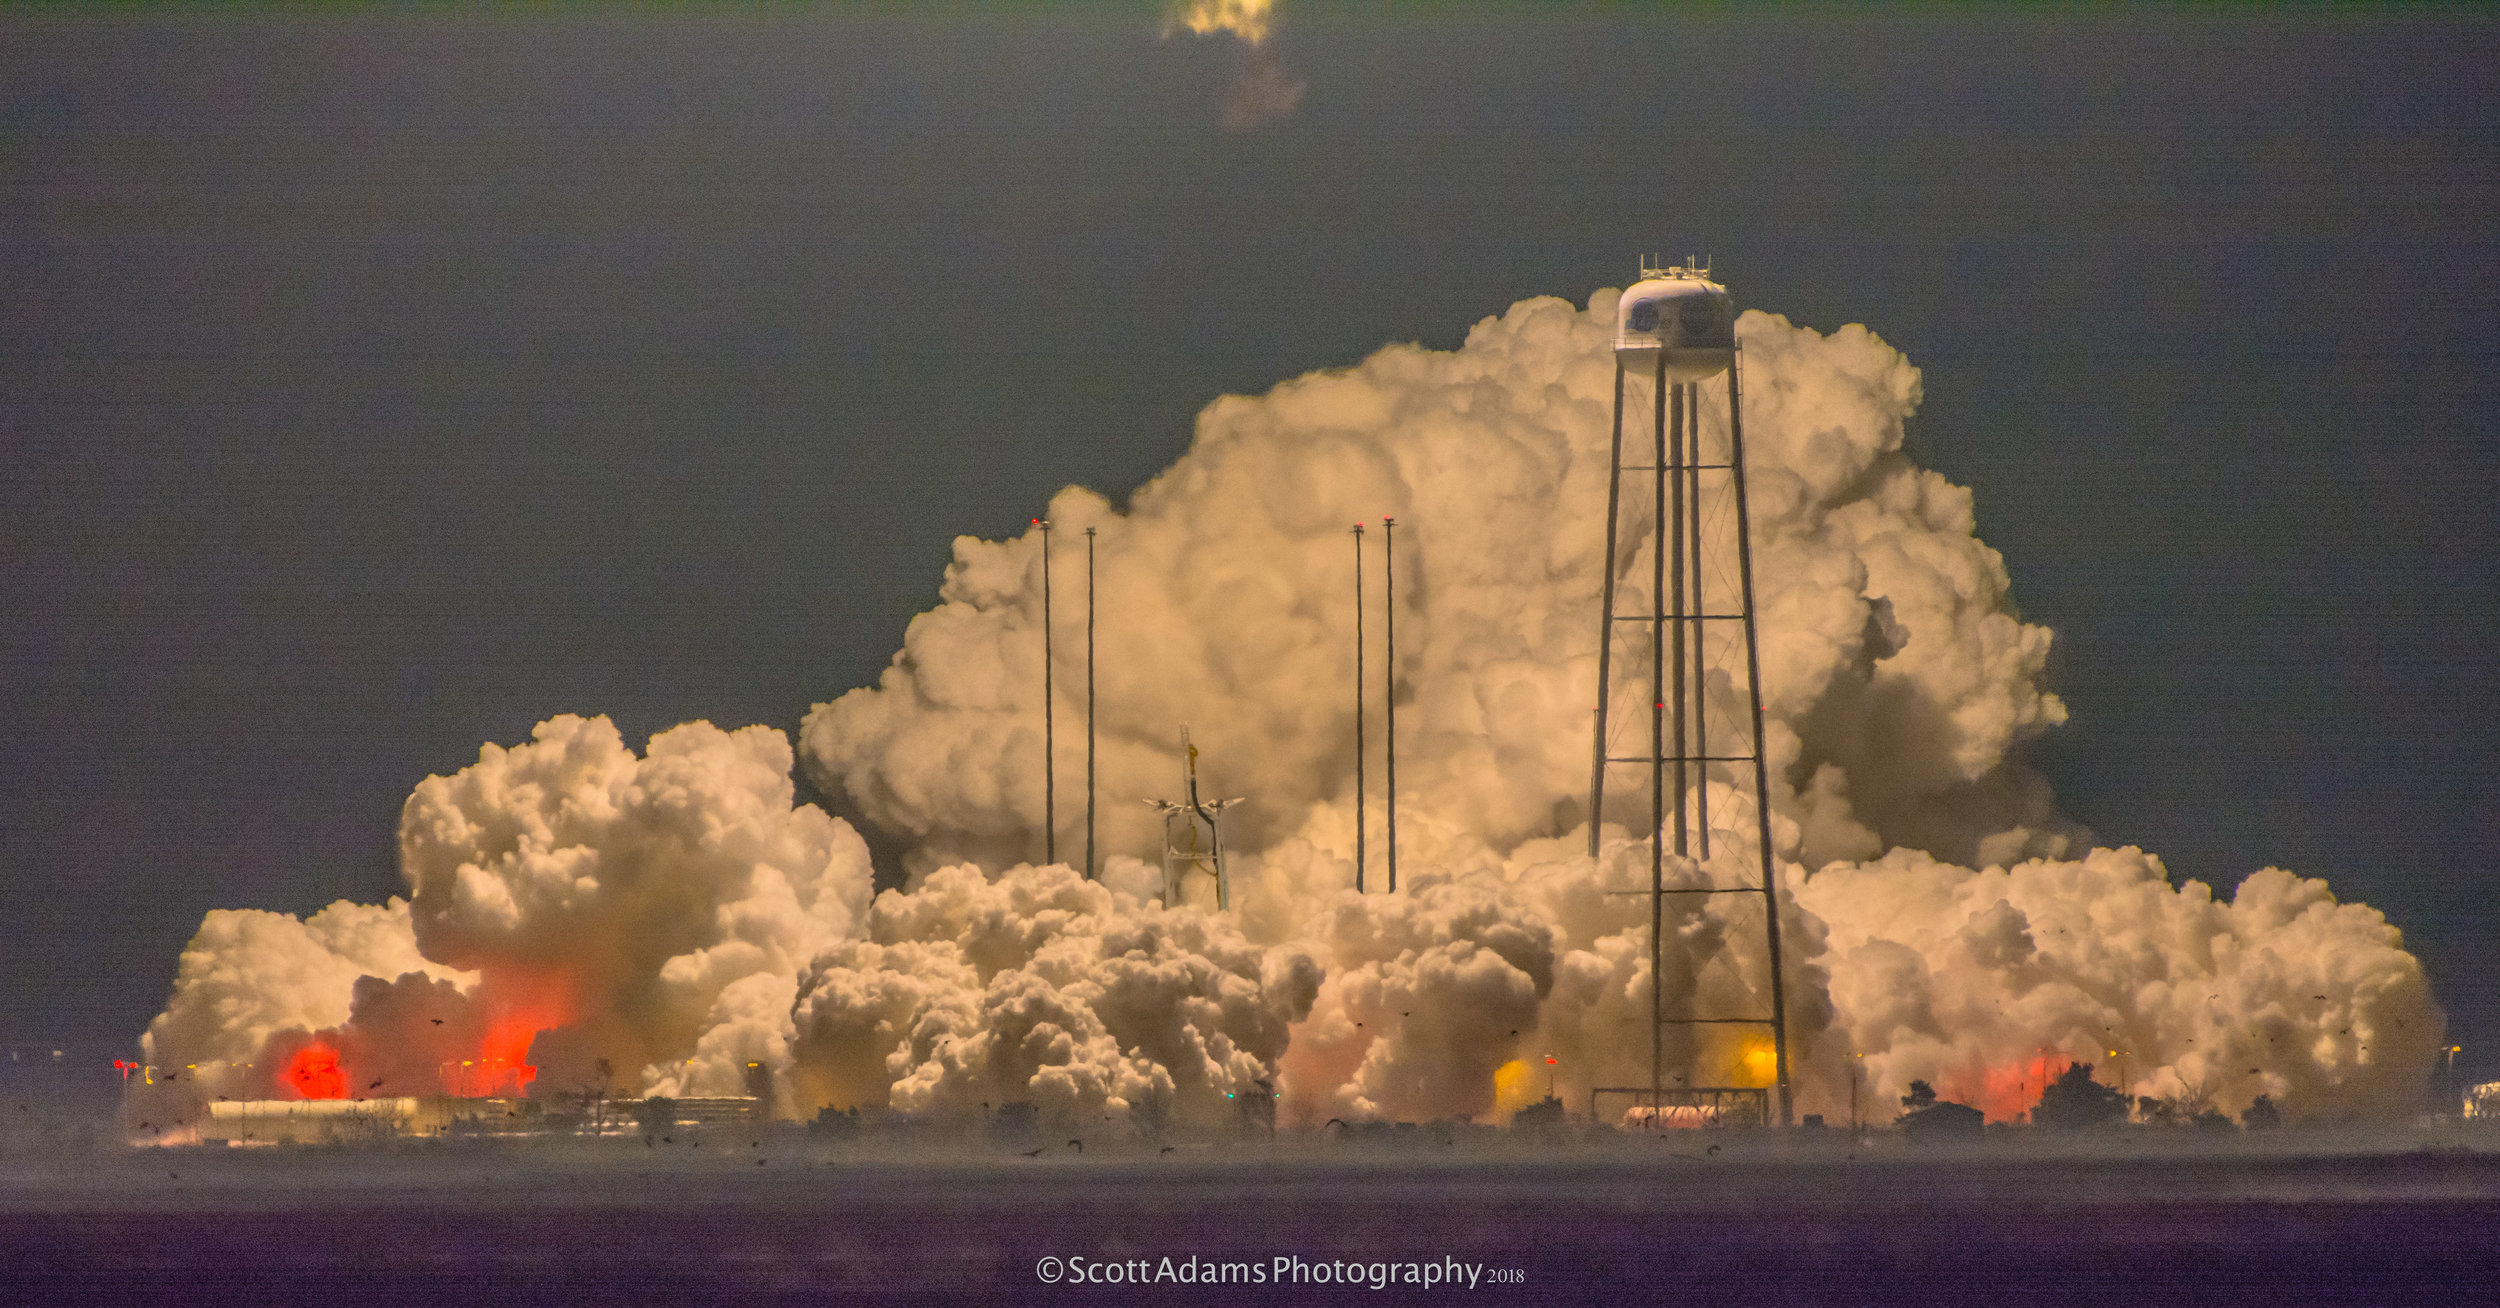 The deluge system produces a massive cloud of water vapor immediately after launch. This is a stunningly good photo of that phenomenon at night. (Photo: Scott Adams)